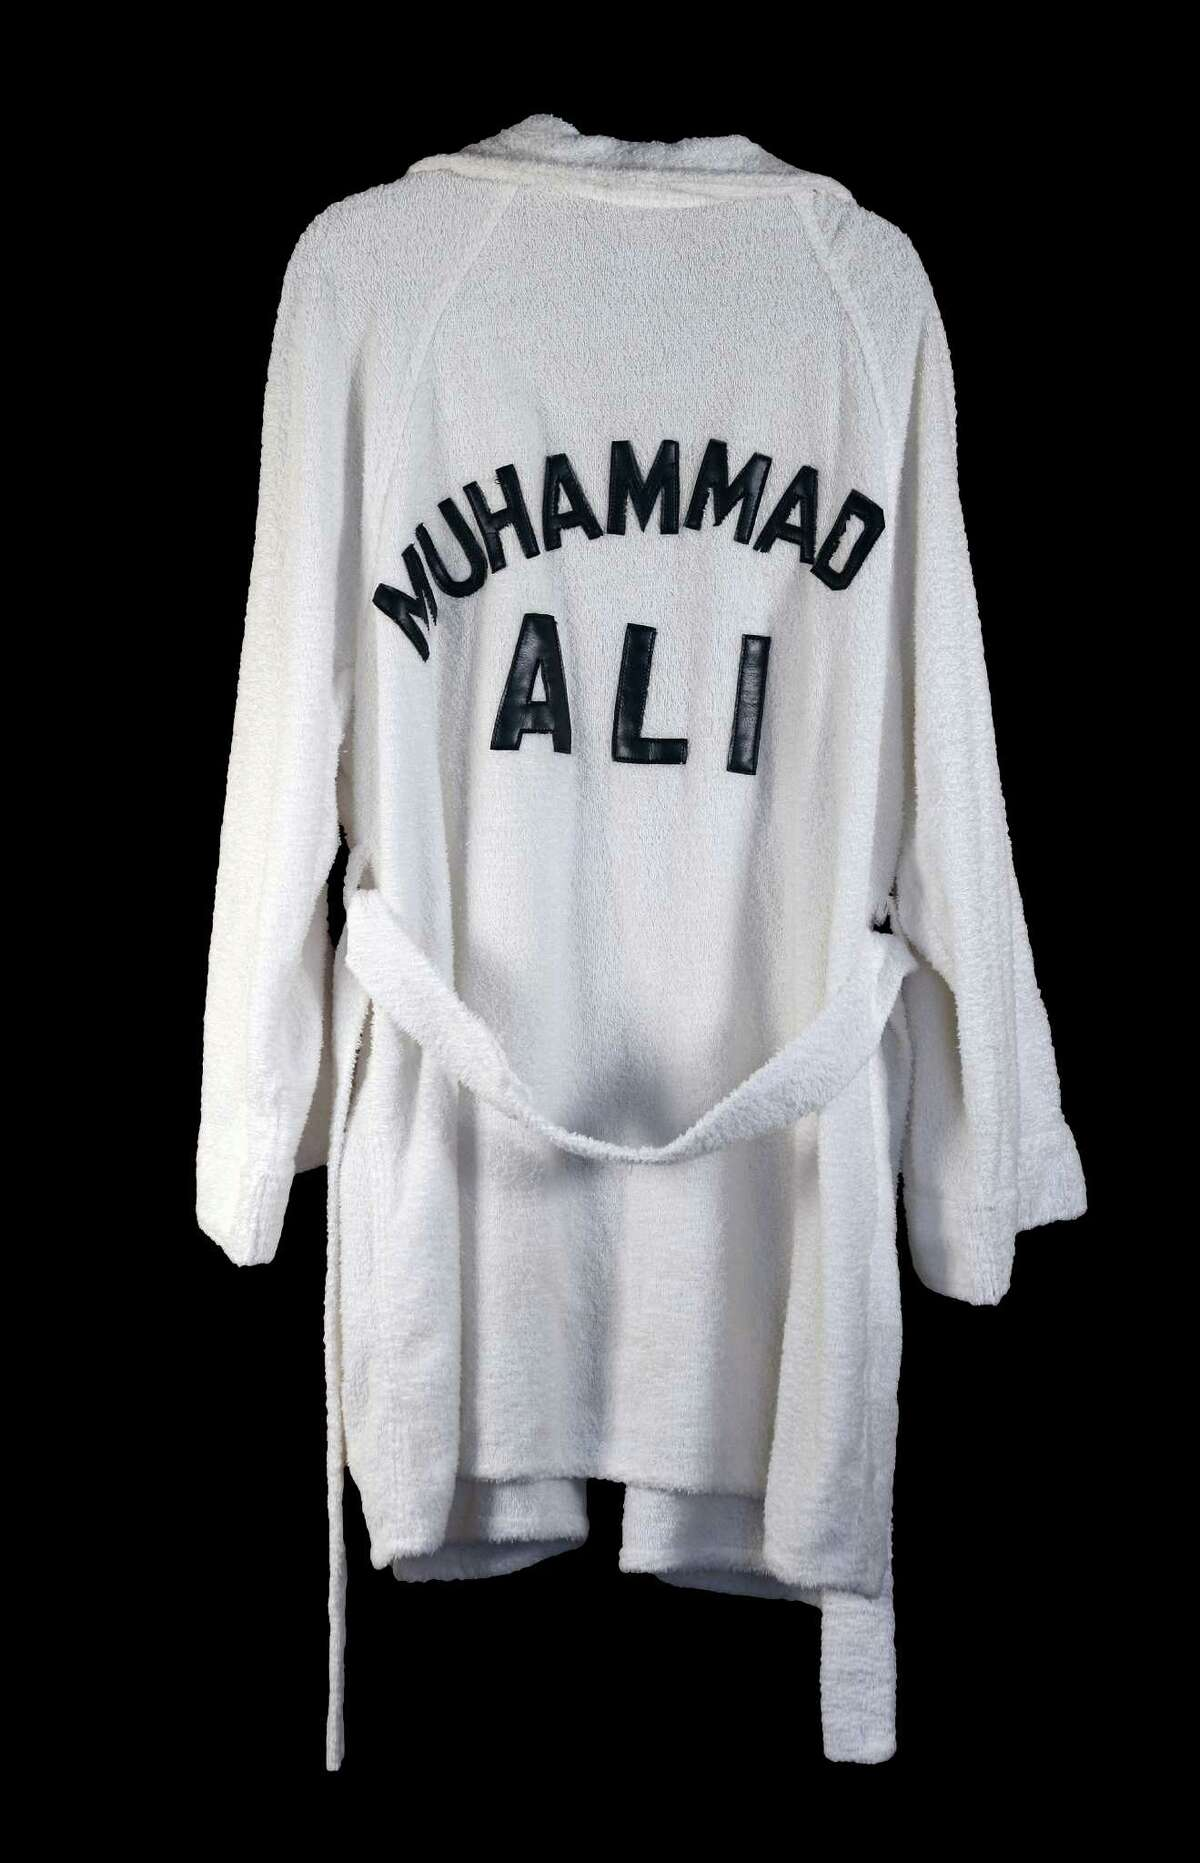 A collection of outlaw country singer Waylon Jennings' belongings will go on public auction on Sunday, including boxing legend Muhammad Ali's robe.